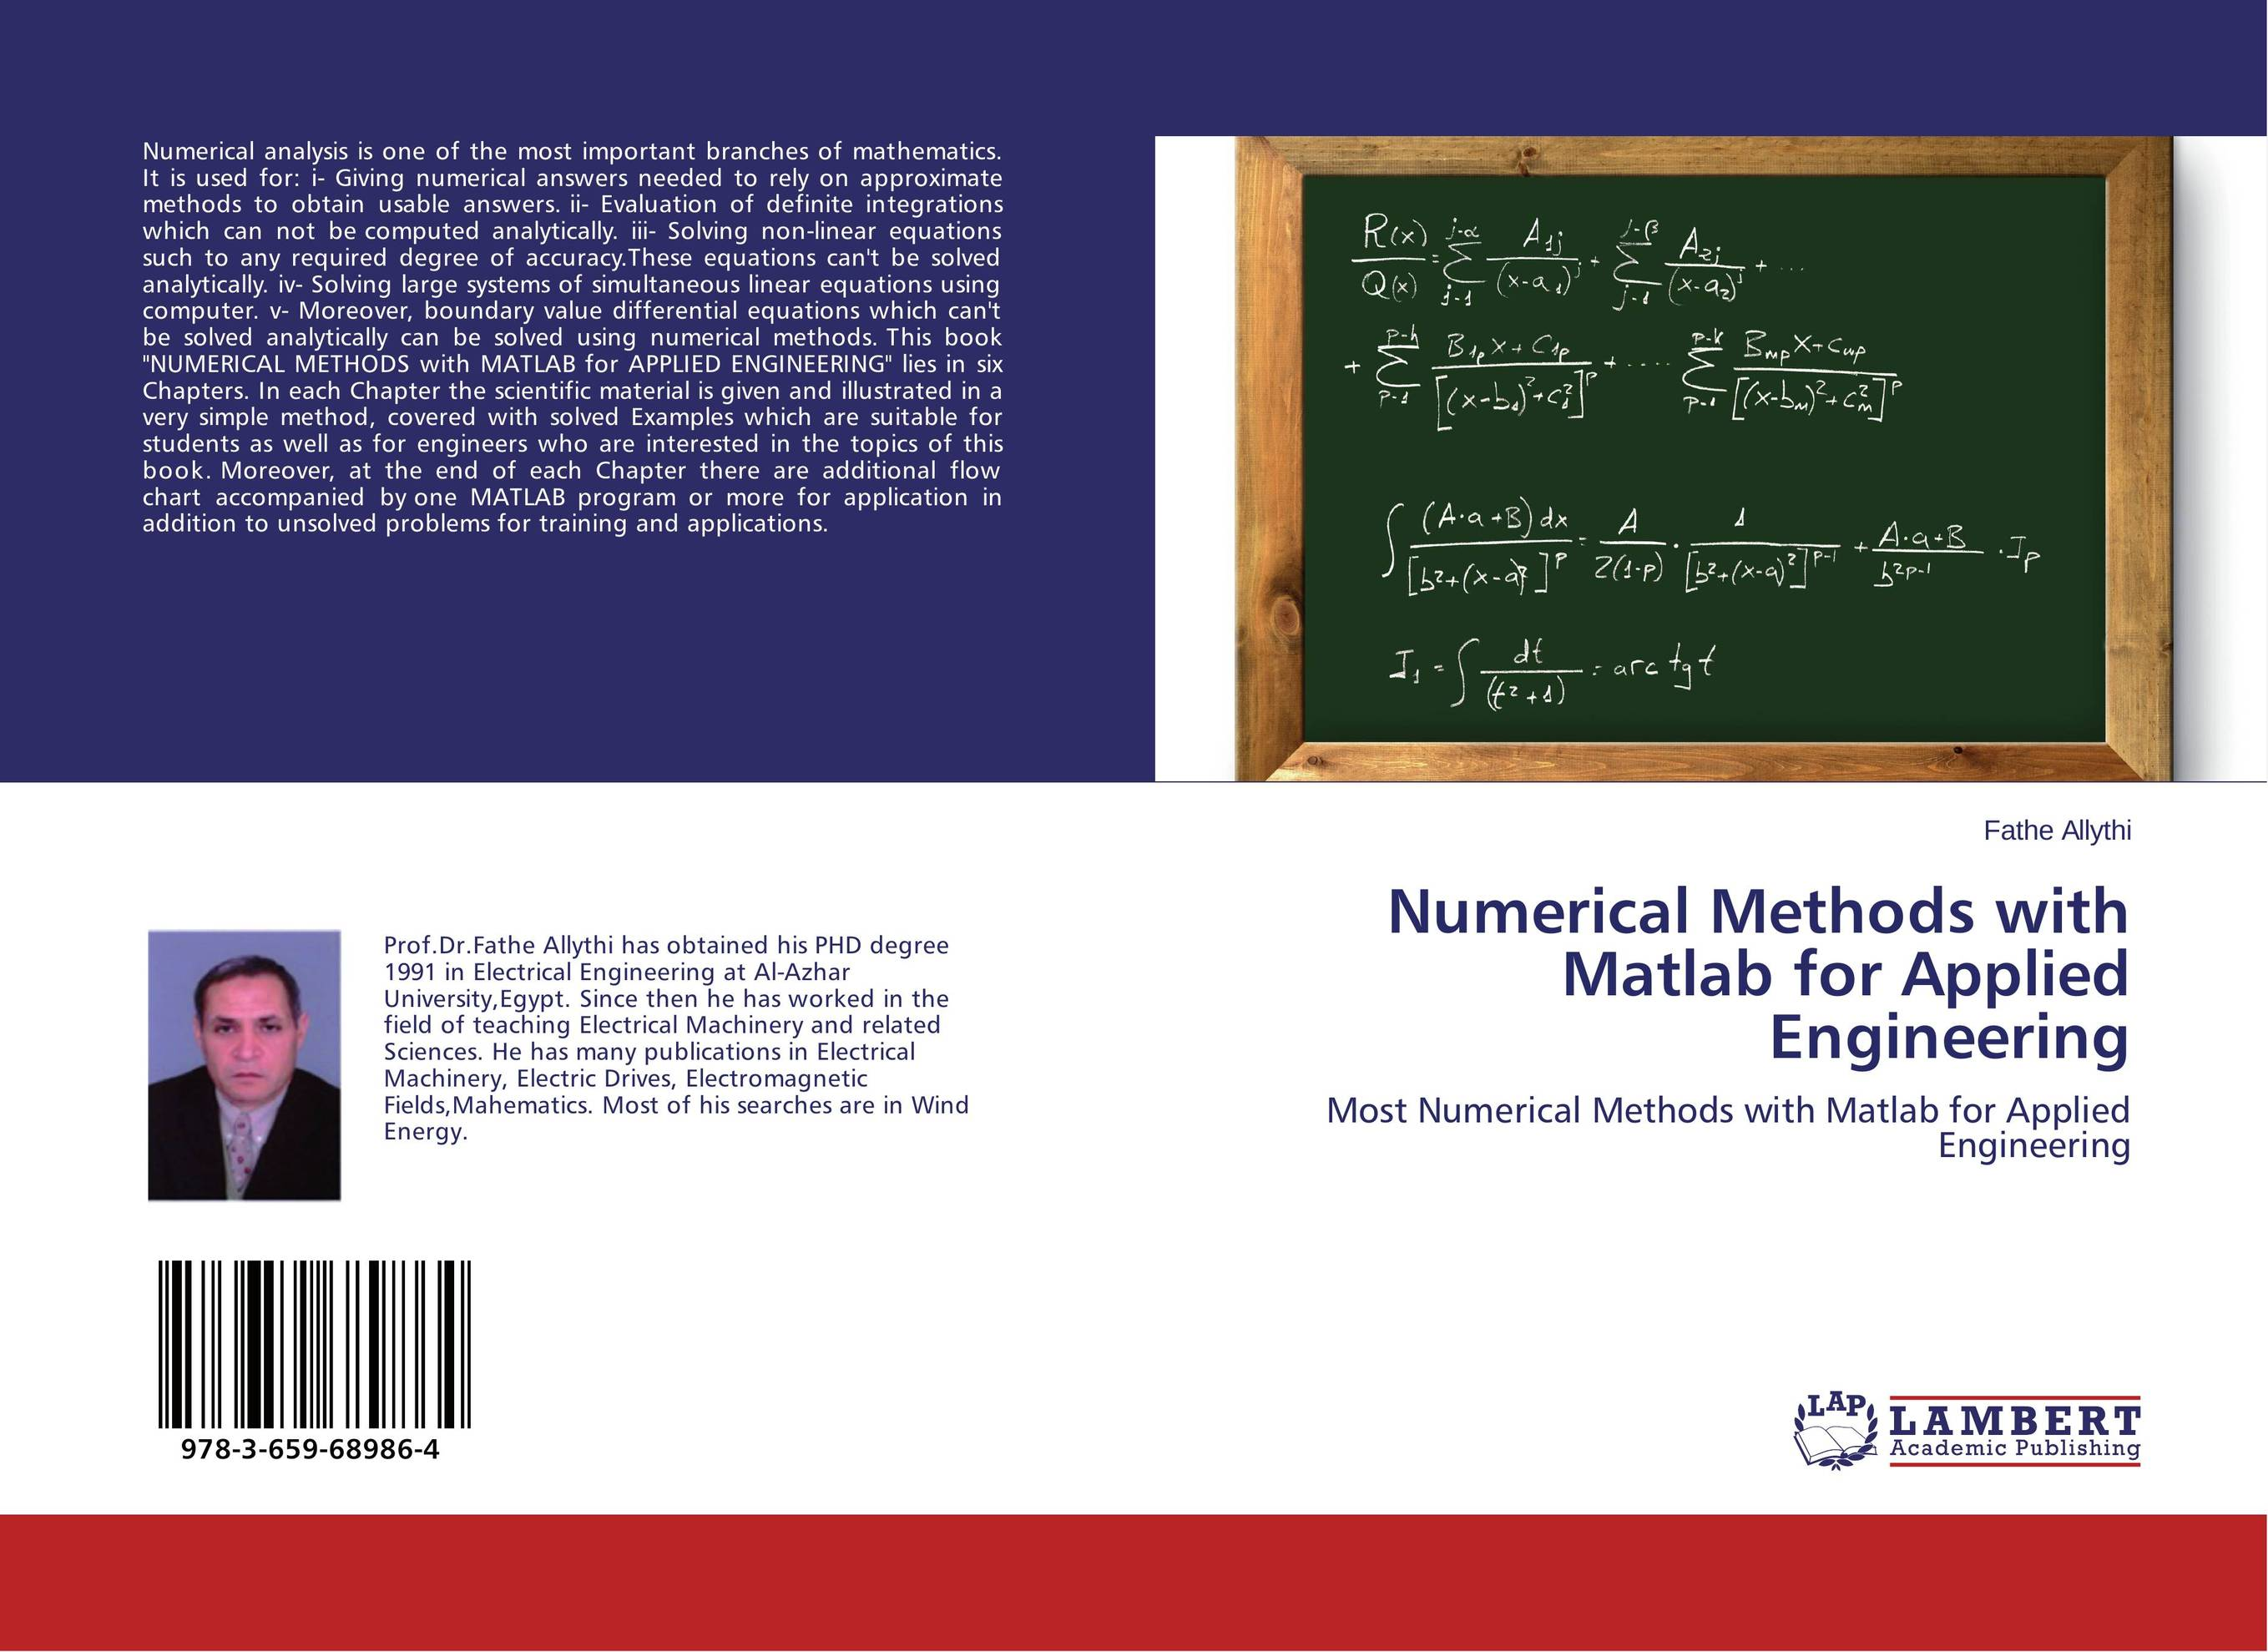 Numerical Methods with Matlab for Applied Engineering simulation of atm using elliptic curve cryptography in matlab